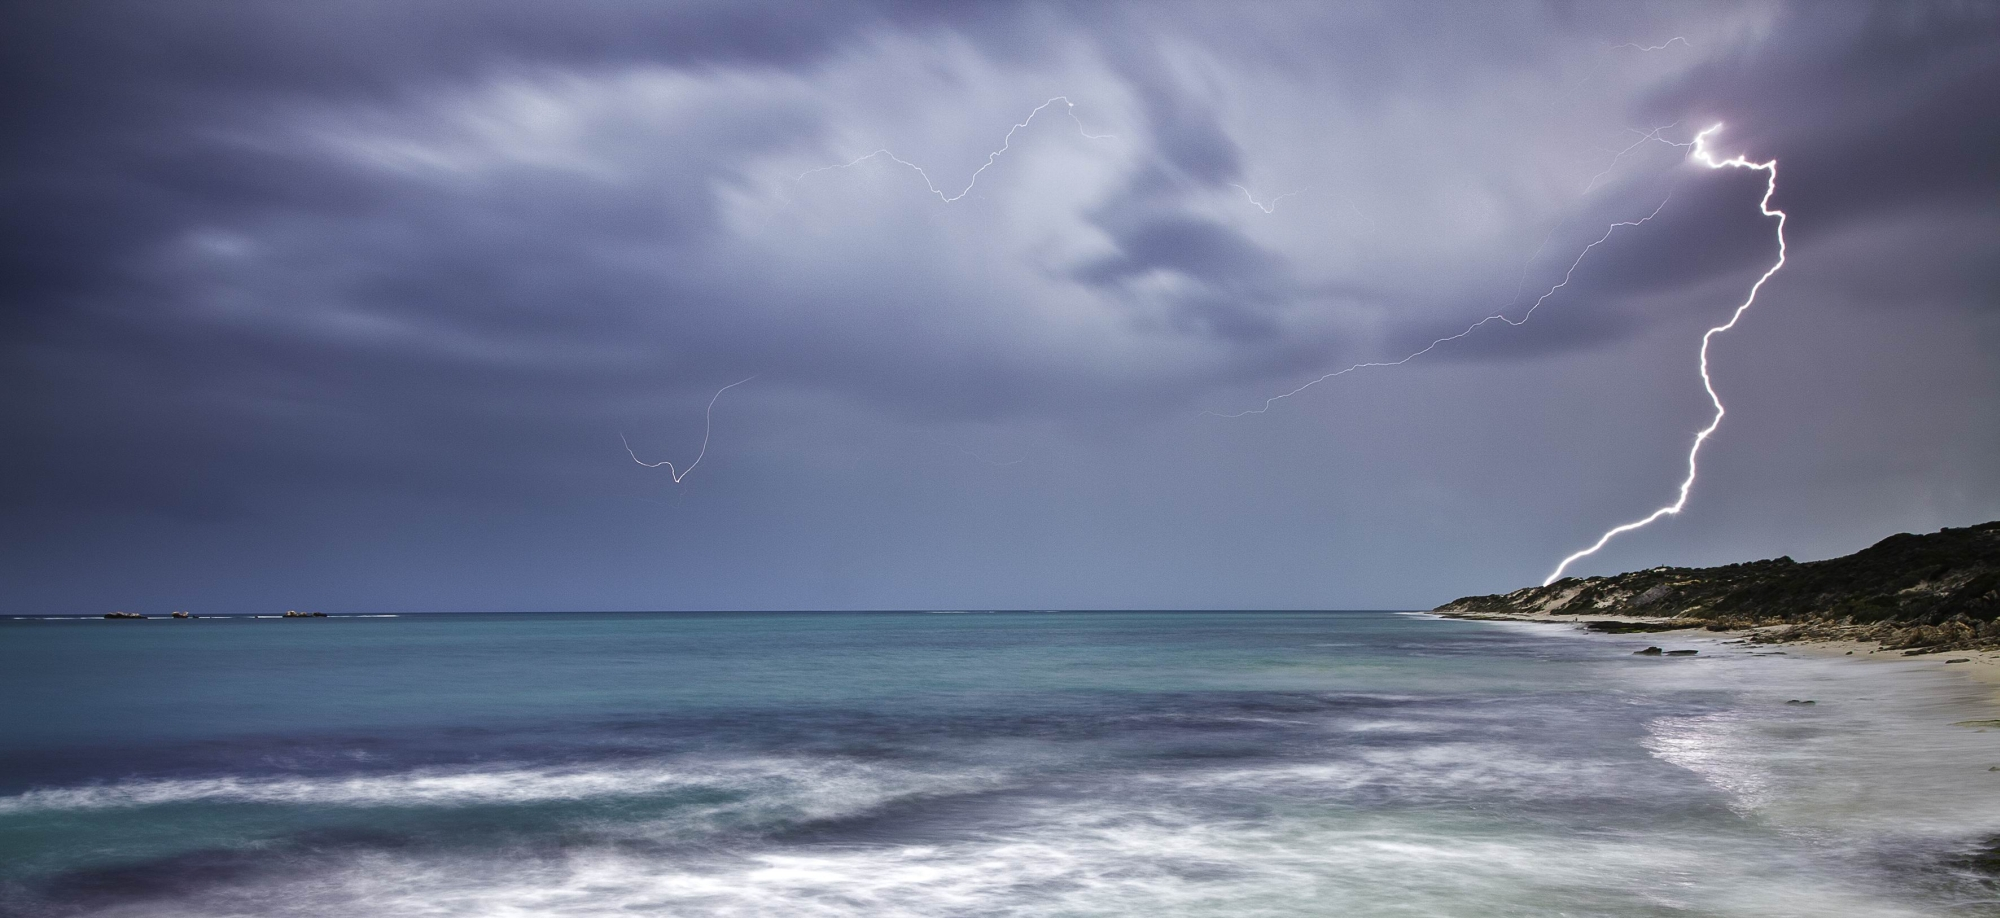 Jordan Cantelo's picture of a storm at Burns Beach was among the winners. Picture: Jordan Cantelo